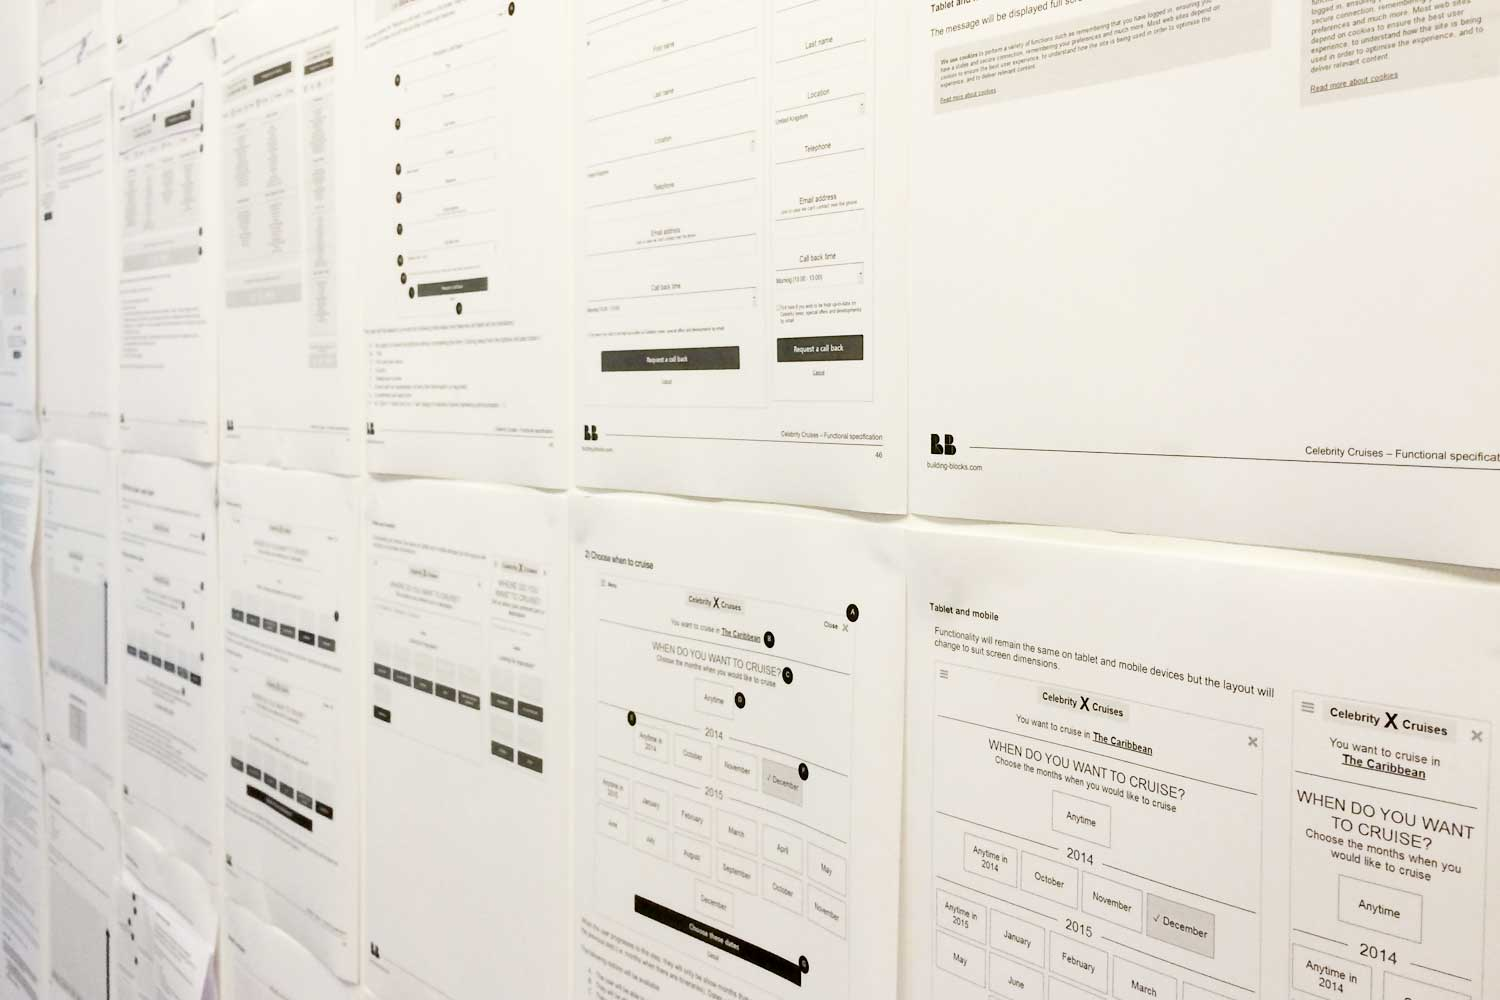 Detailed wireframes from Axure replace the Explore output ready for more work to be done with visual design.